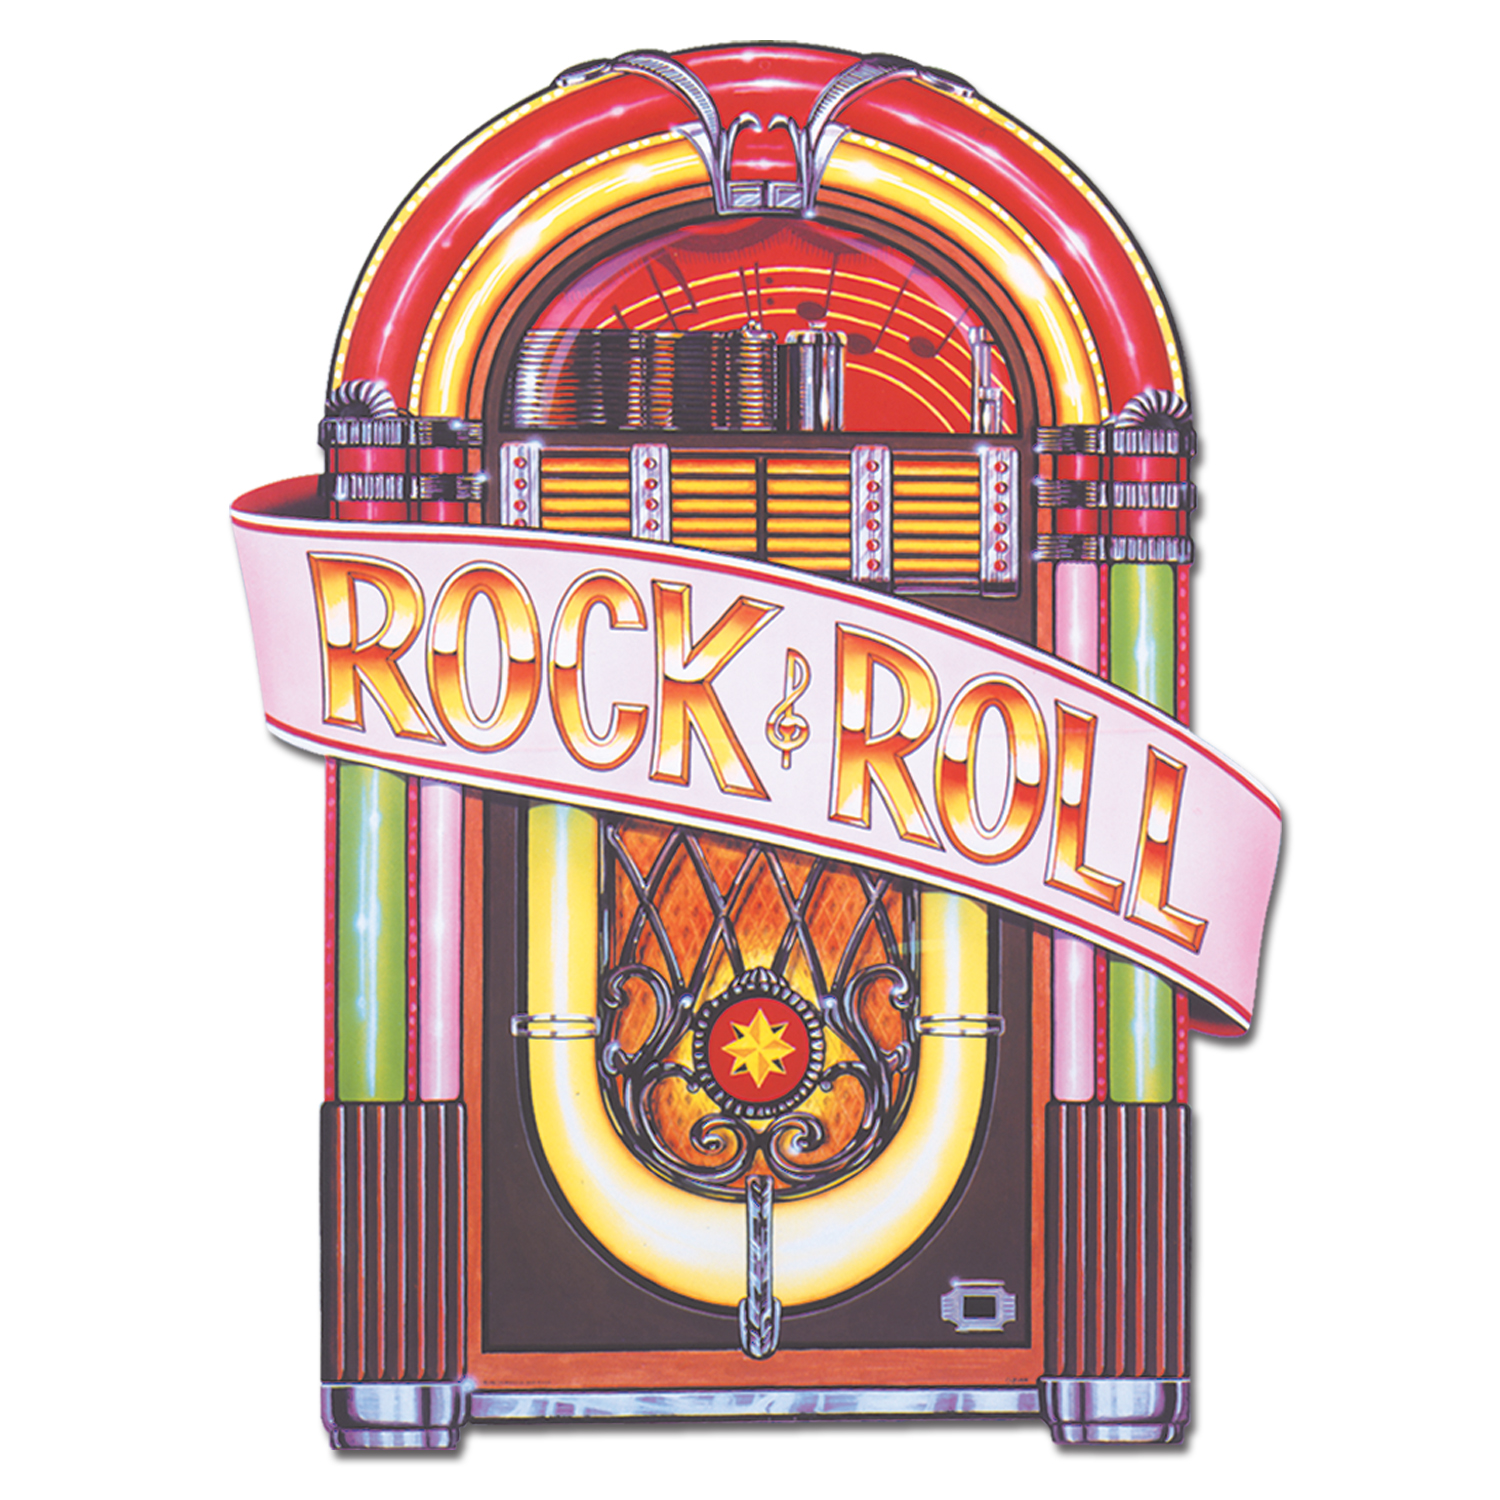 beistle Rock & roll jukebox dekoration på temashop.dk